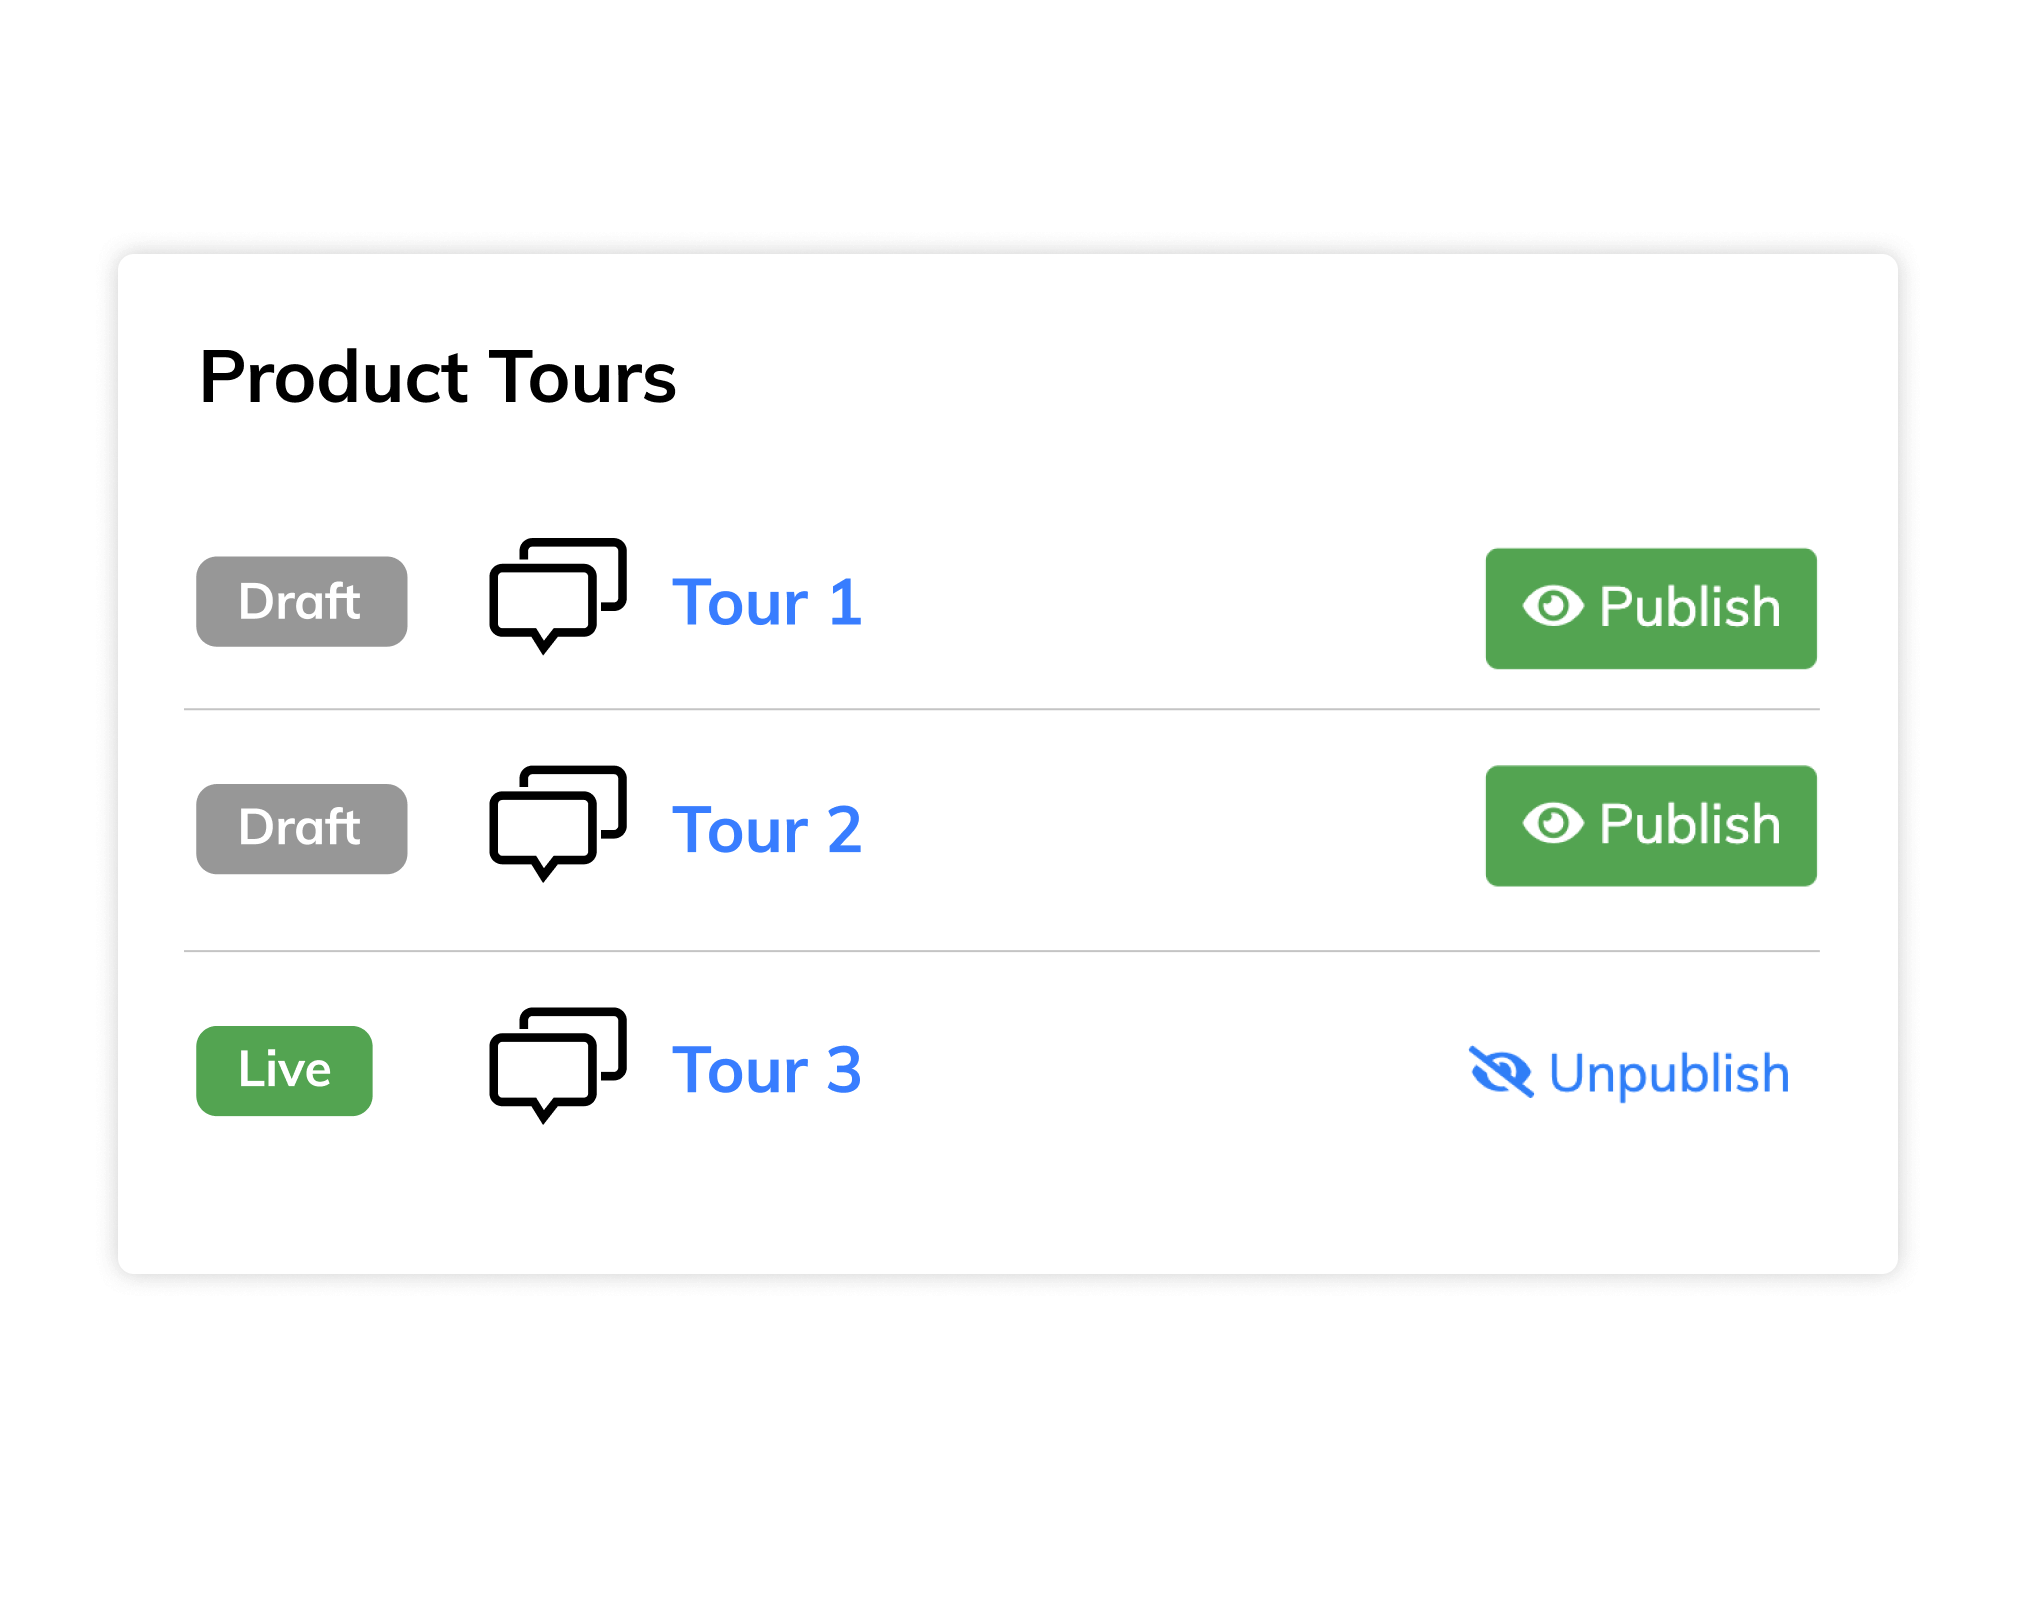 Push changes instantly with our product tour software